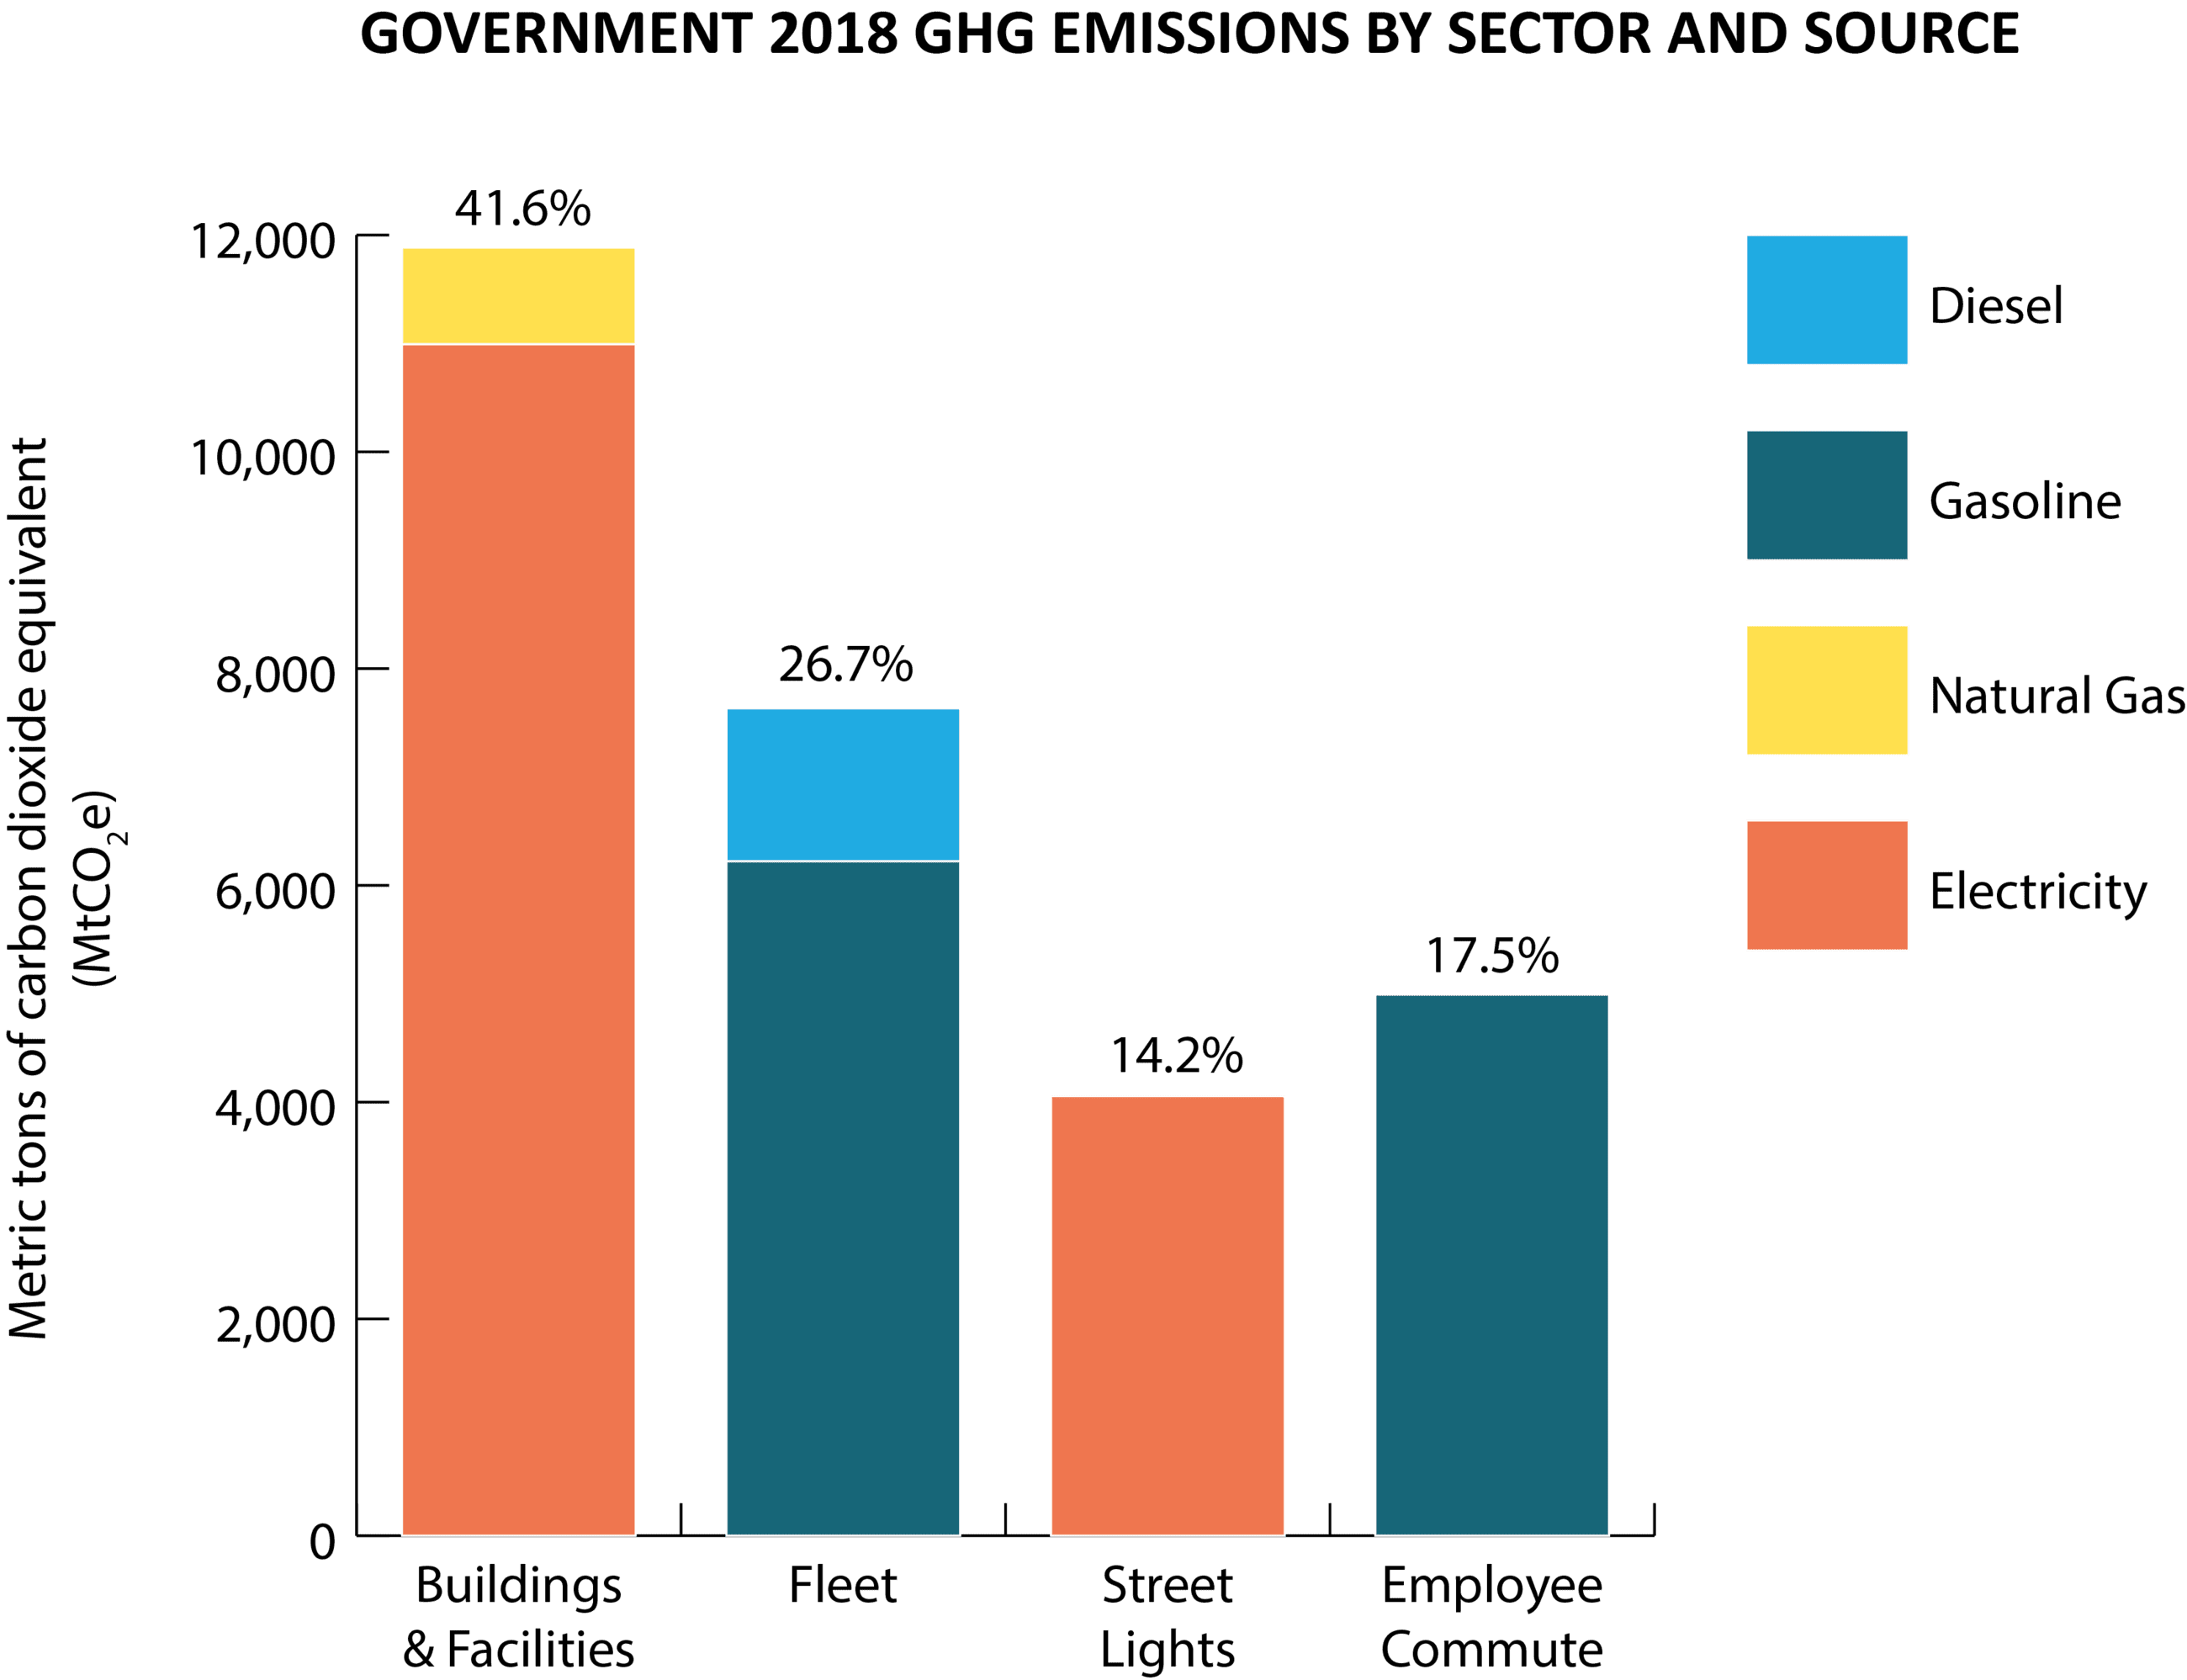 Municipal 2018 GHG Emissions by Sector and Source